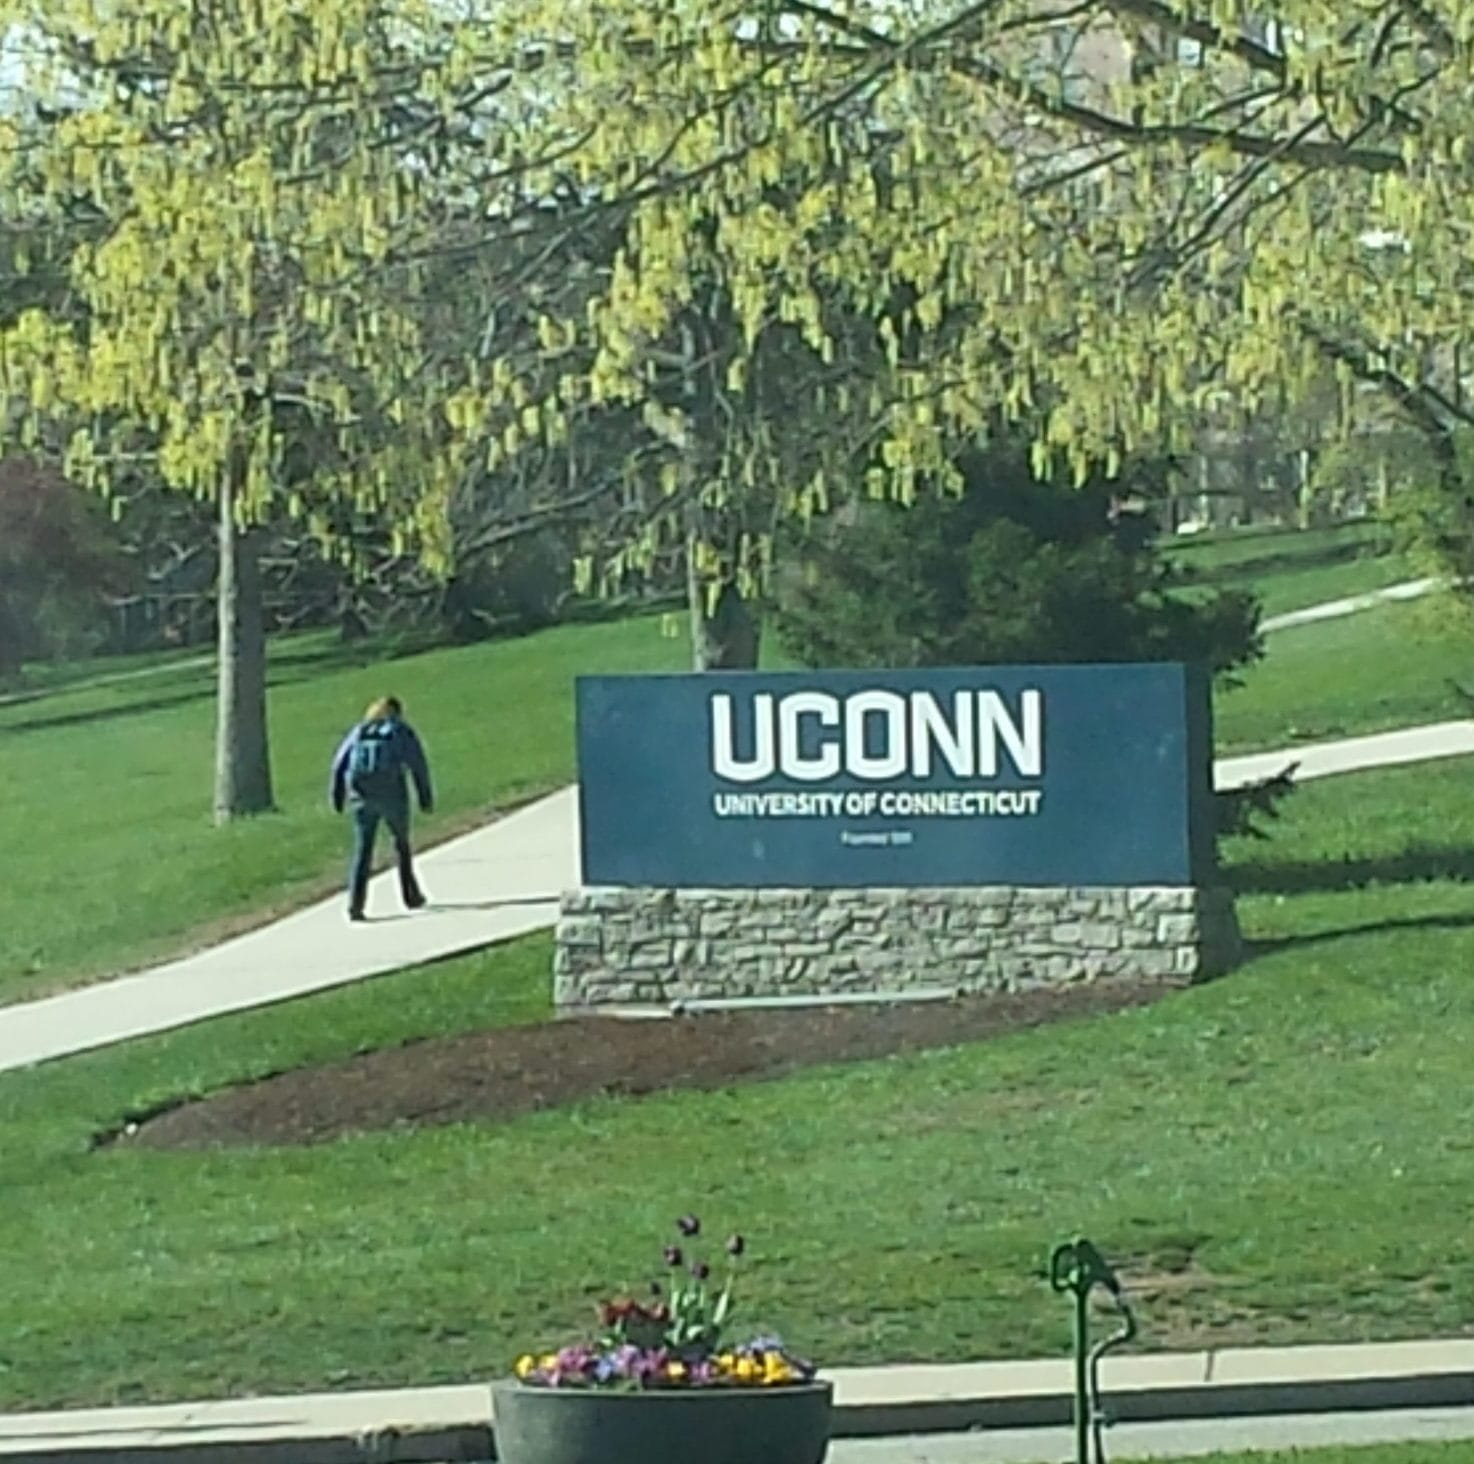 Cost to attend UConn rises 23.3% over next five years under new tuition plan